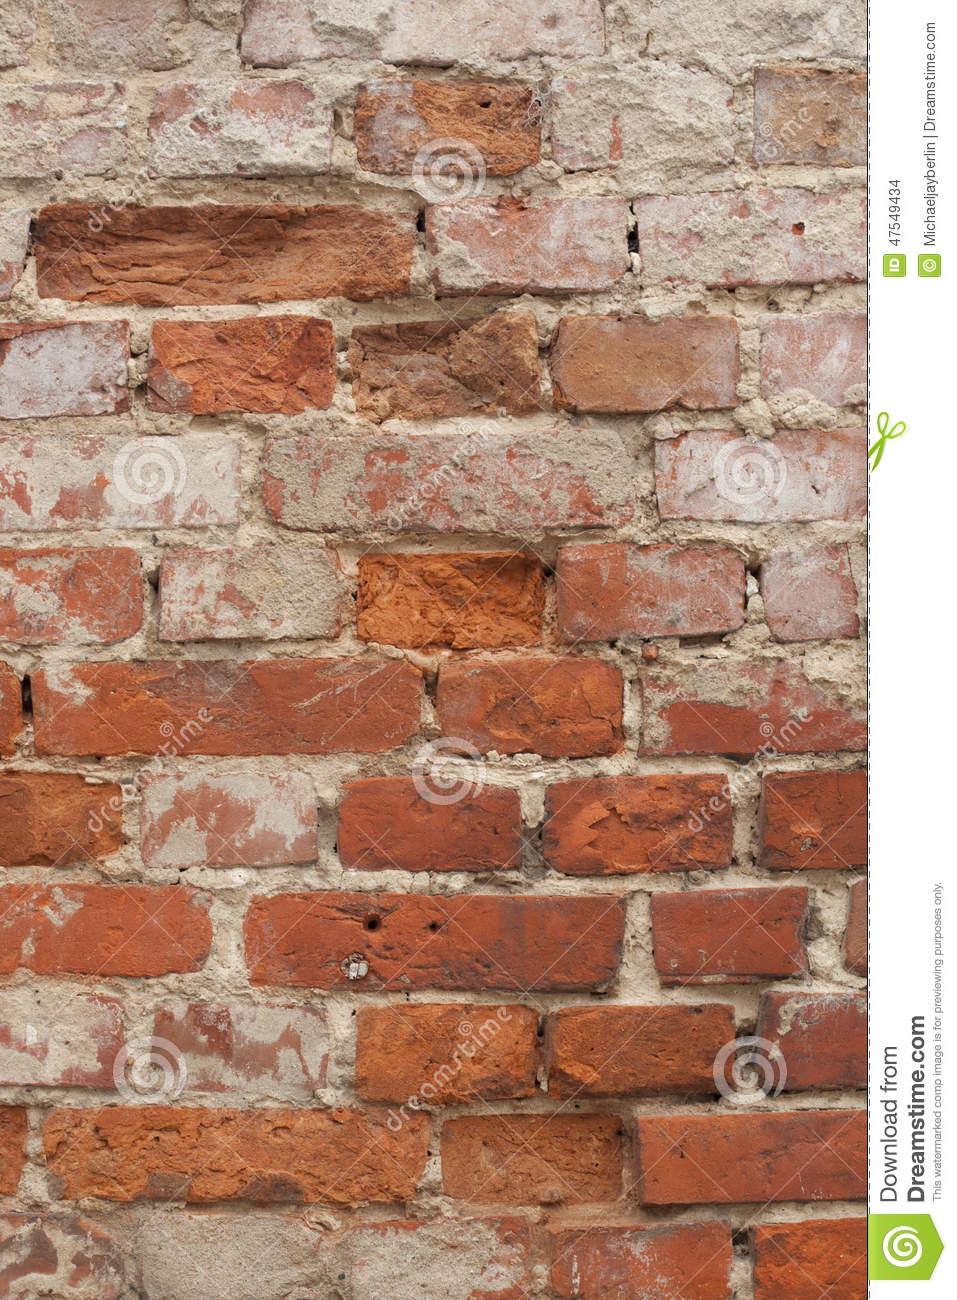 Decaying Old Brick And Mortar Wall Stock Photo - Image: 47549434